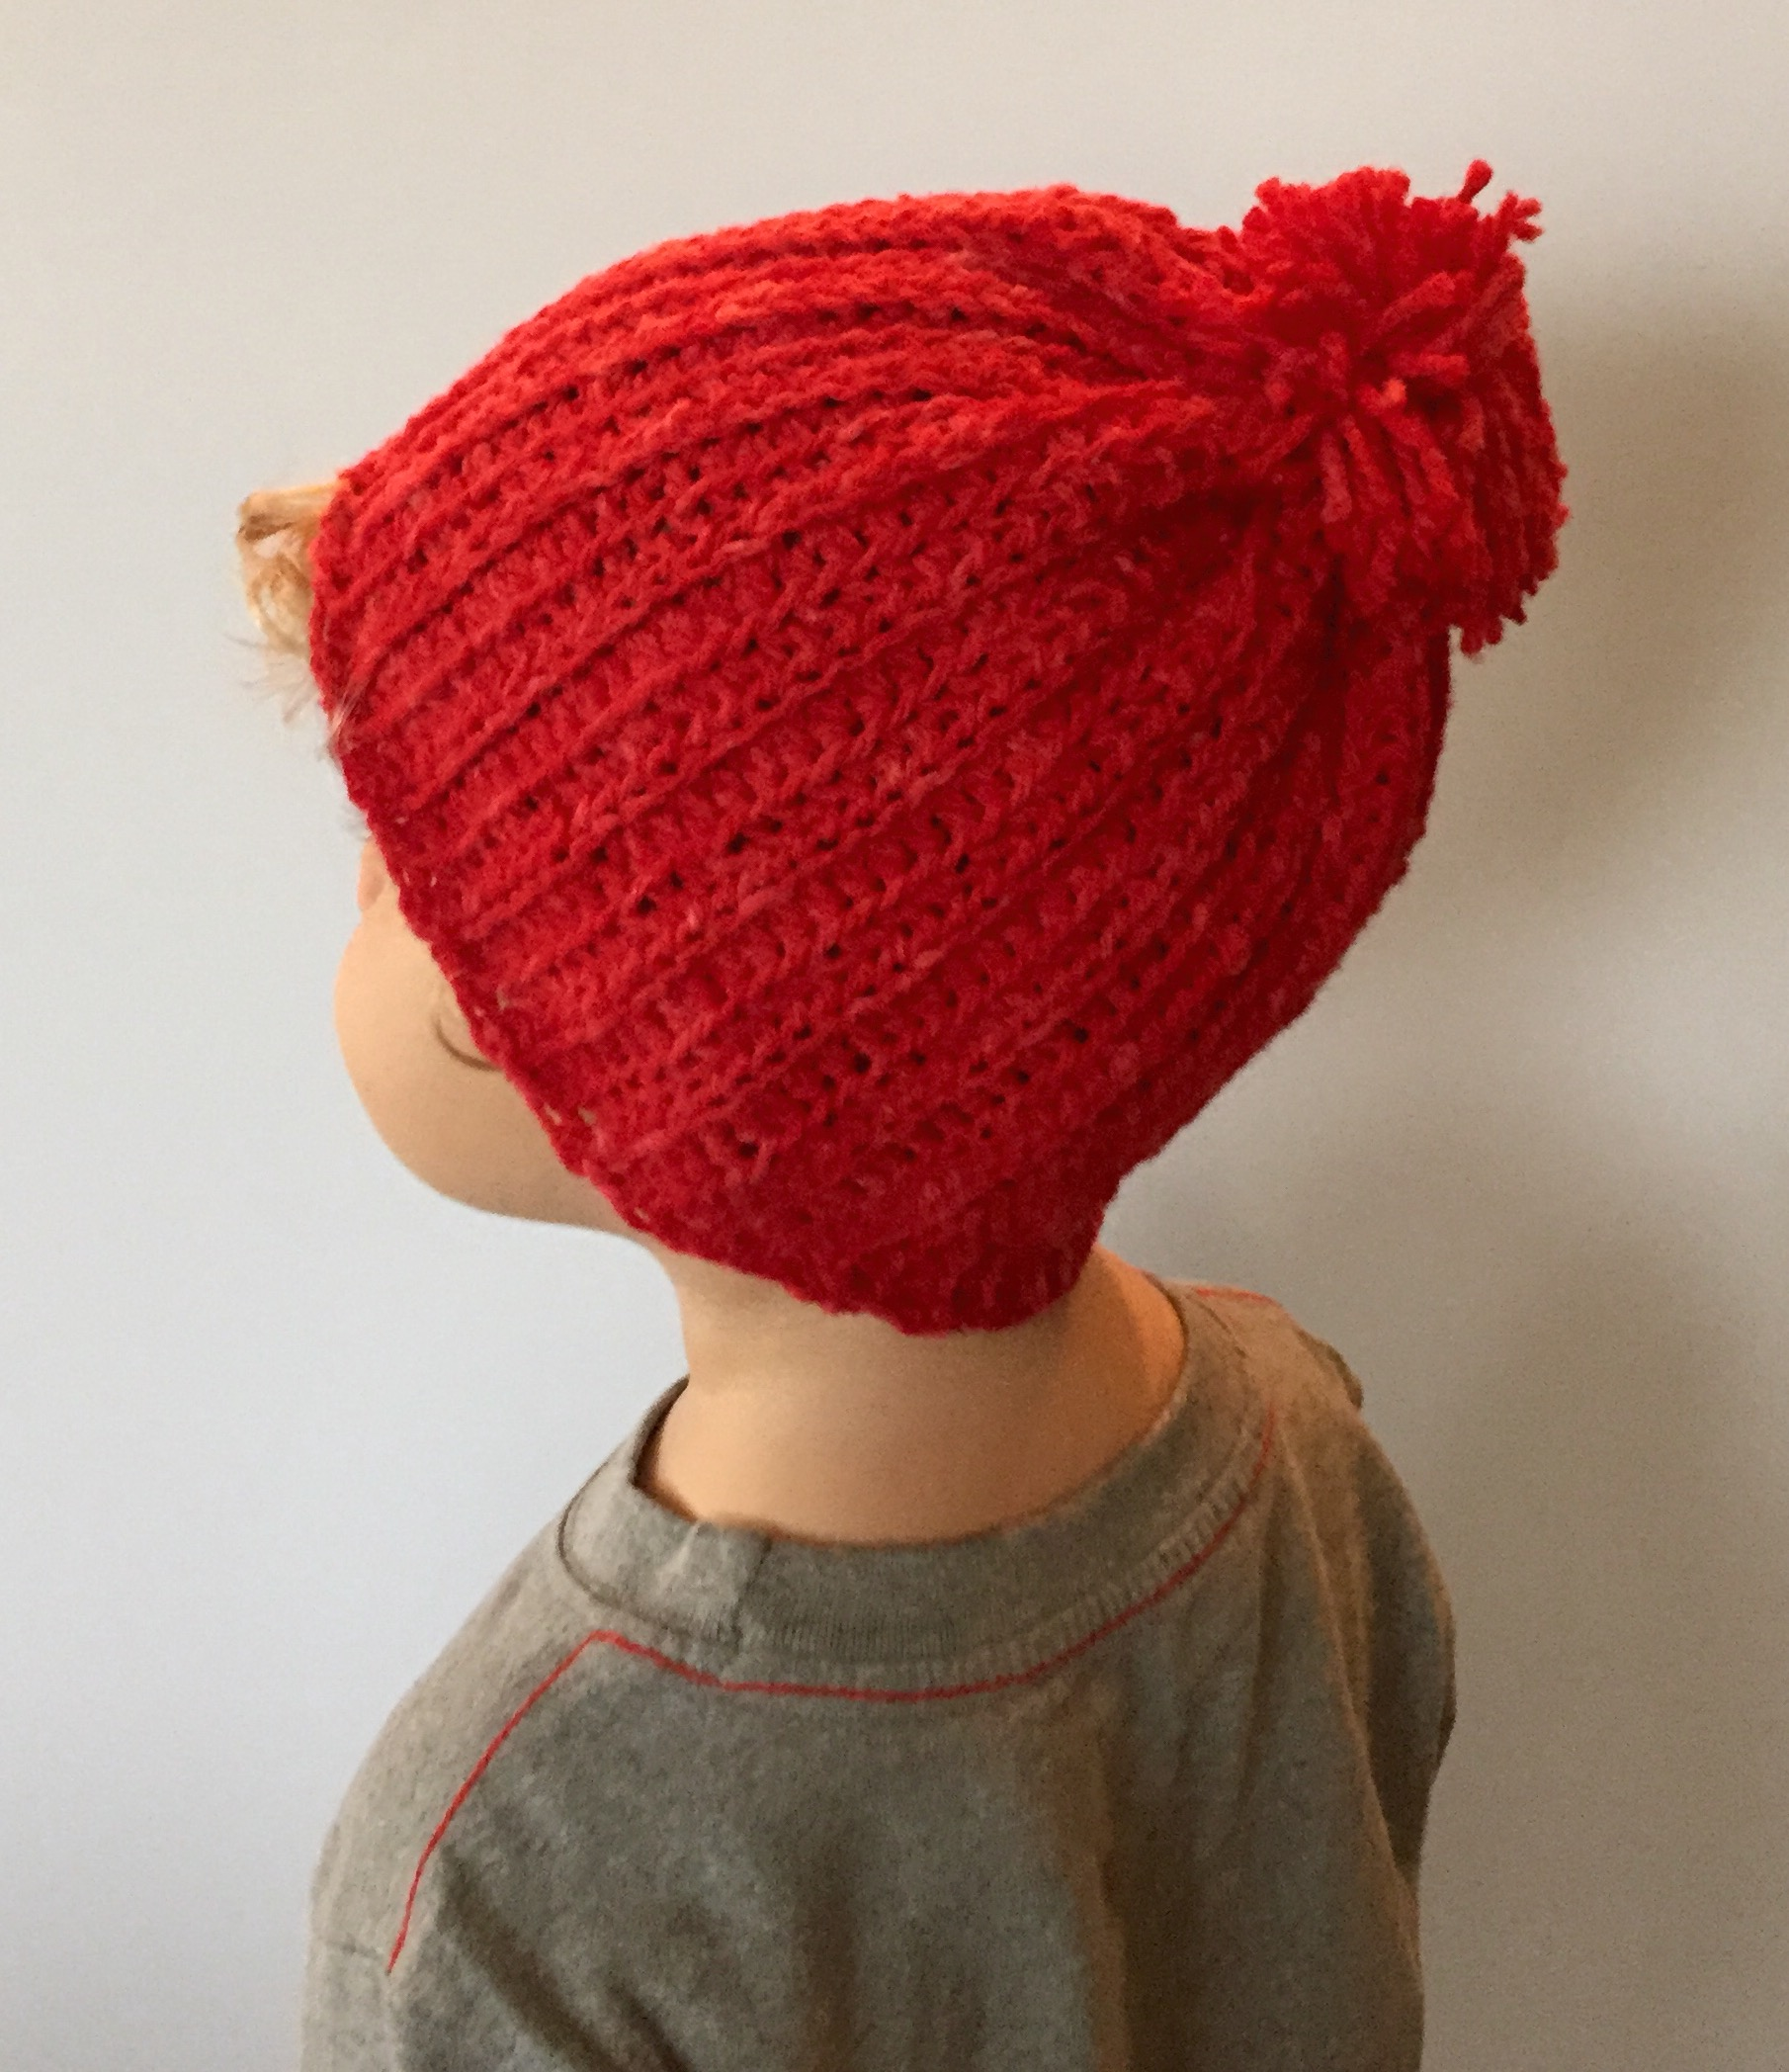 Crochet Pattern - Cade\'s Ribbed Hat with Pom Pom for Toddler, Child ...